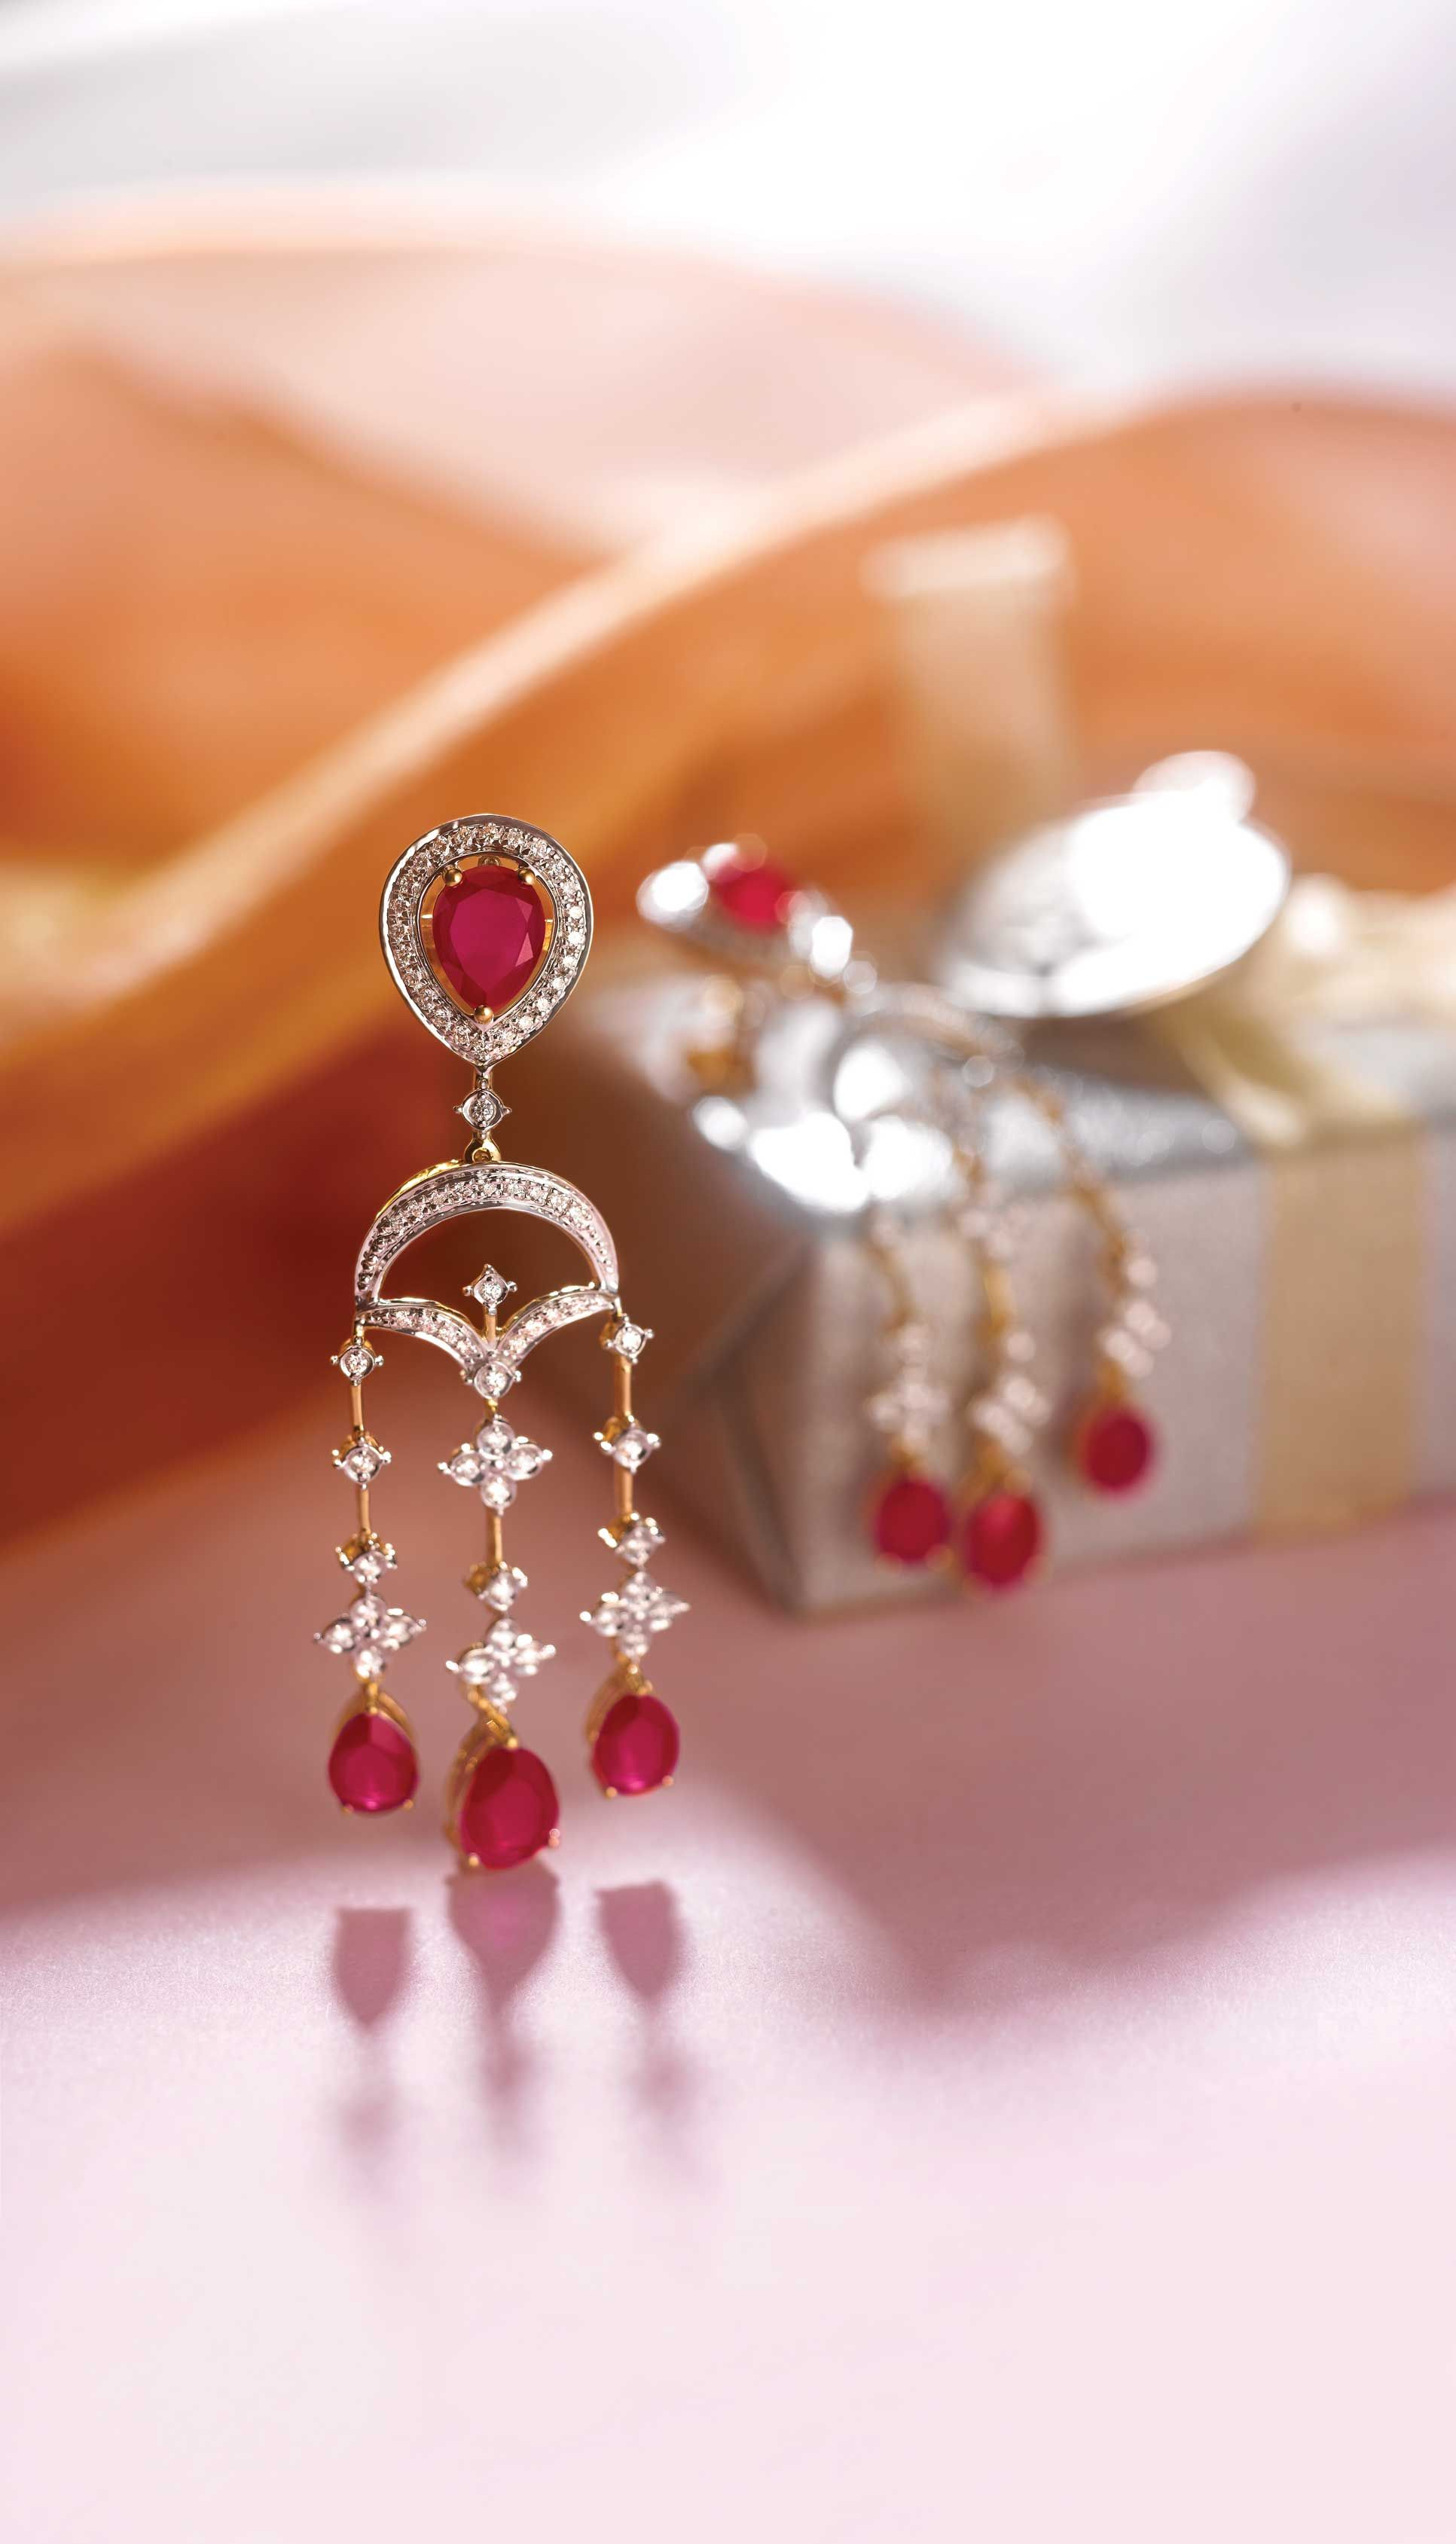 Pin by amandeep kaur on earings pinterest ear rings jewel and